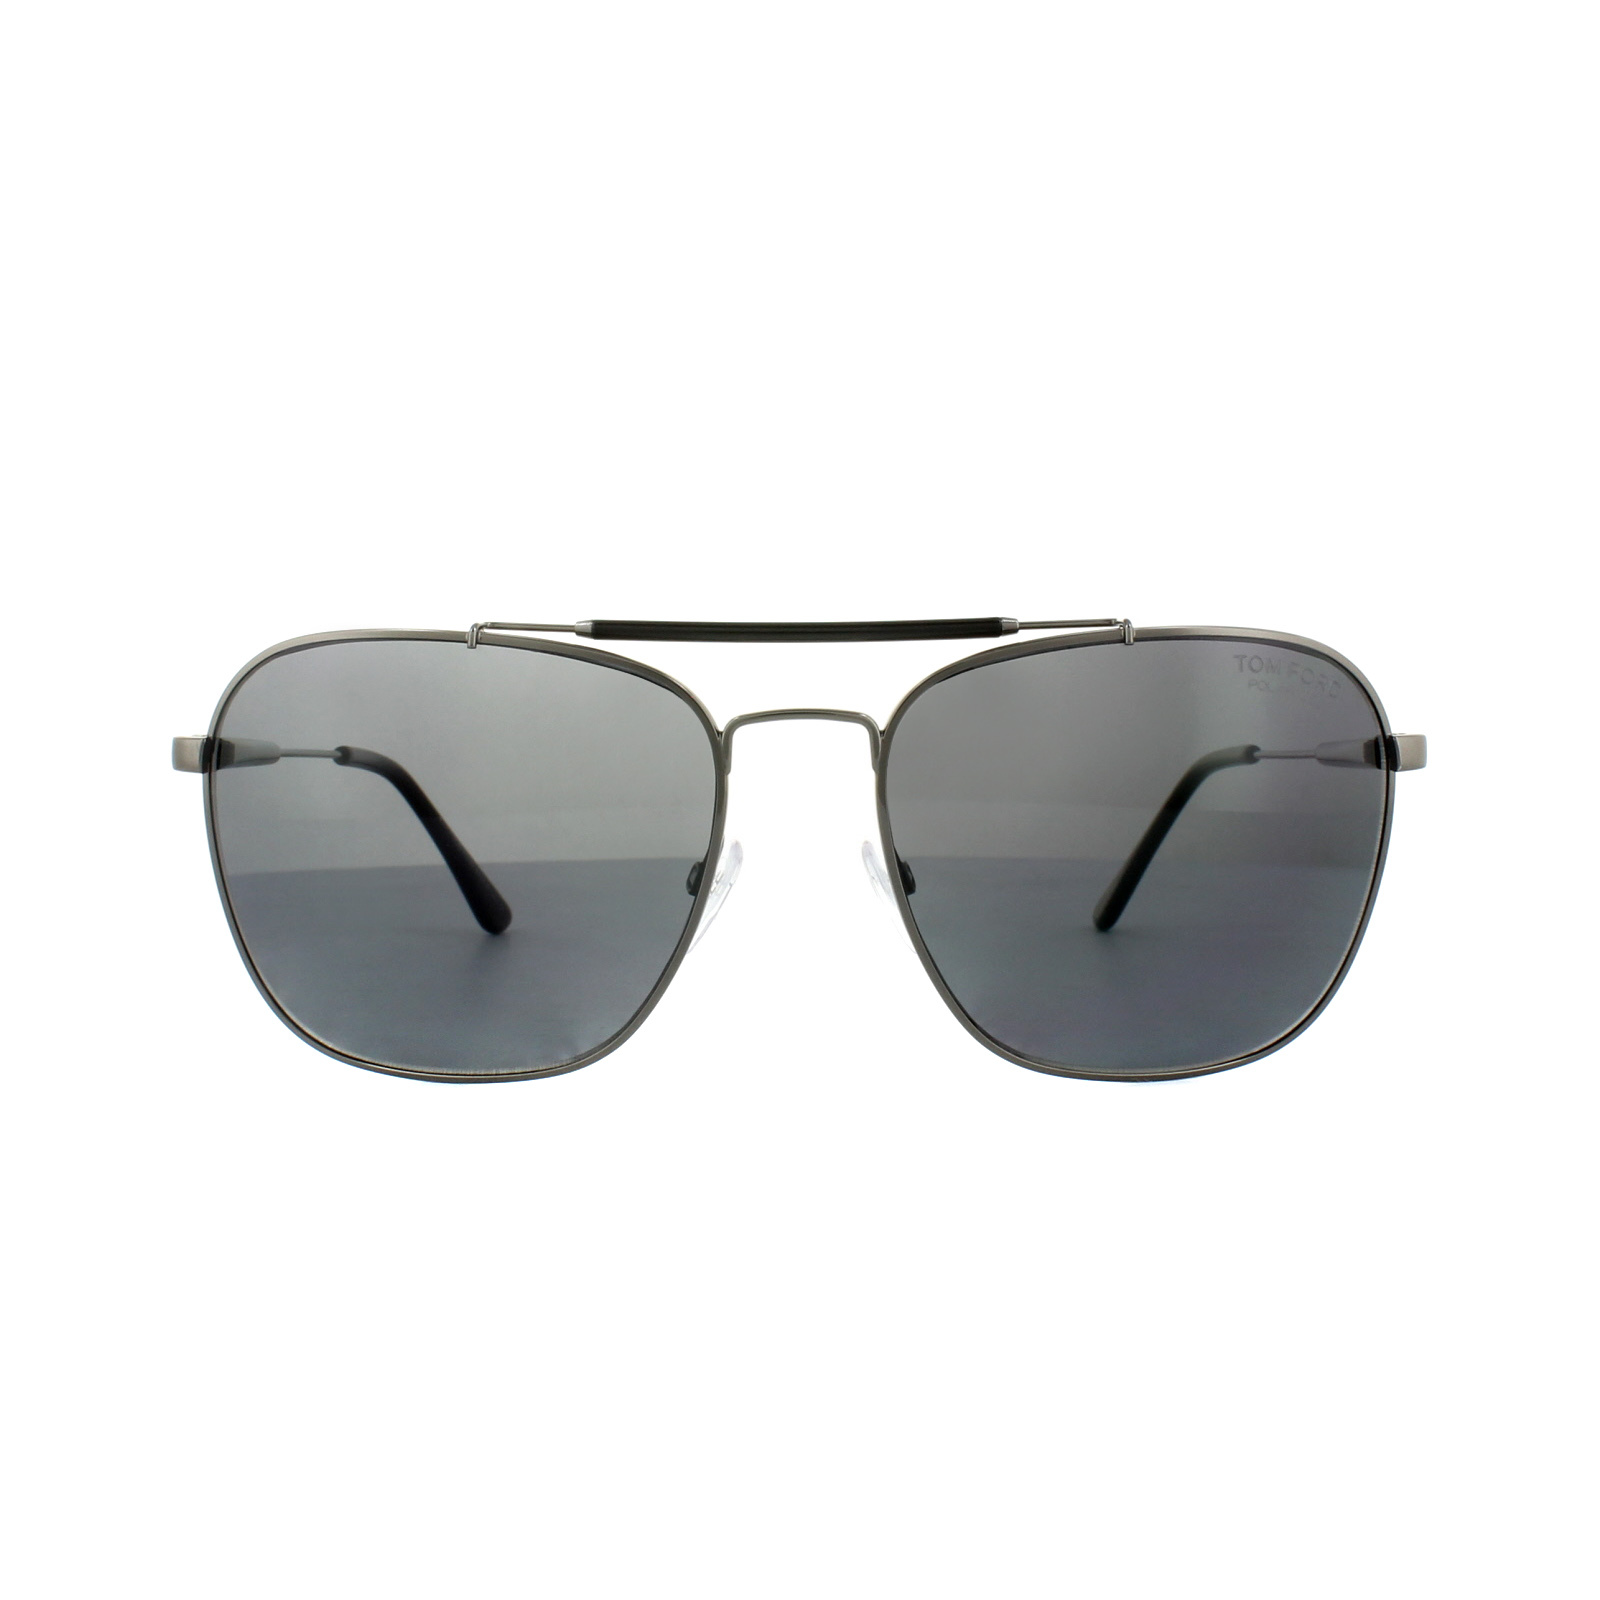 7ec1a5231848 Sentinel Tom Ford Sunglasses FT0377 Edward O9D Matt Ruthenium Grey Polarized